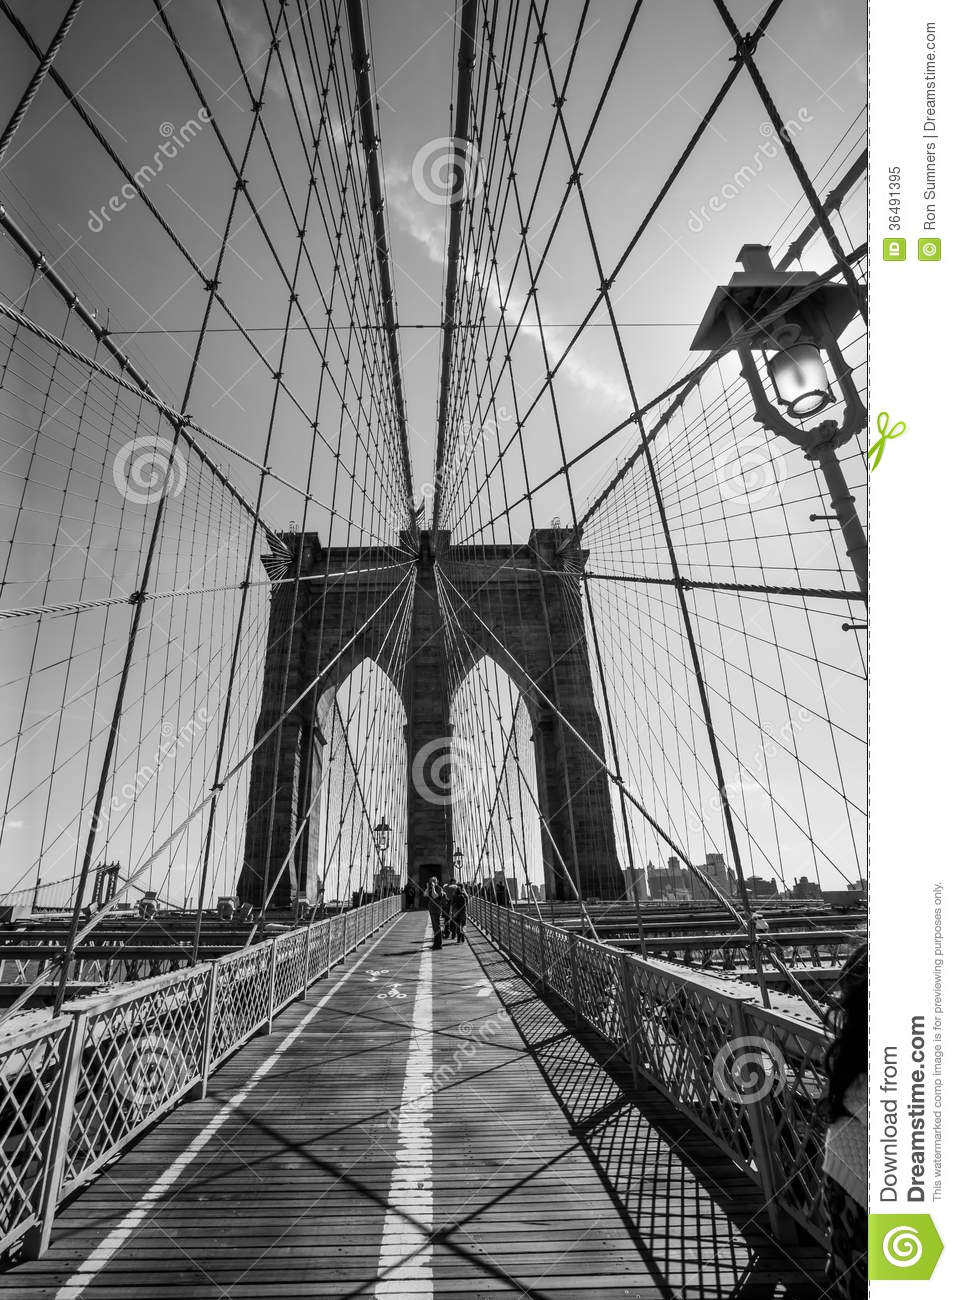 Brooklyn bridge black and white stock image image of for Immagini desktop new york